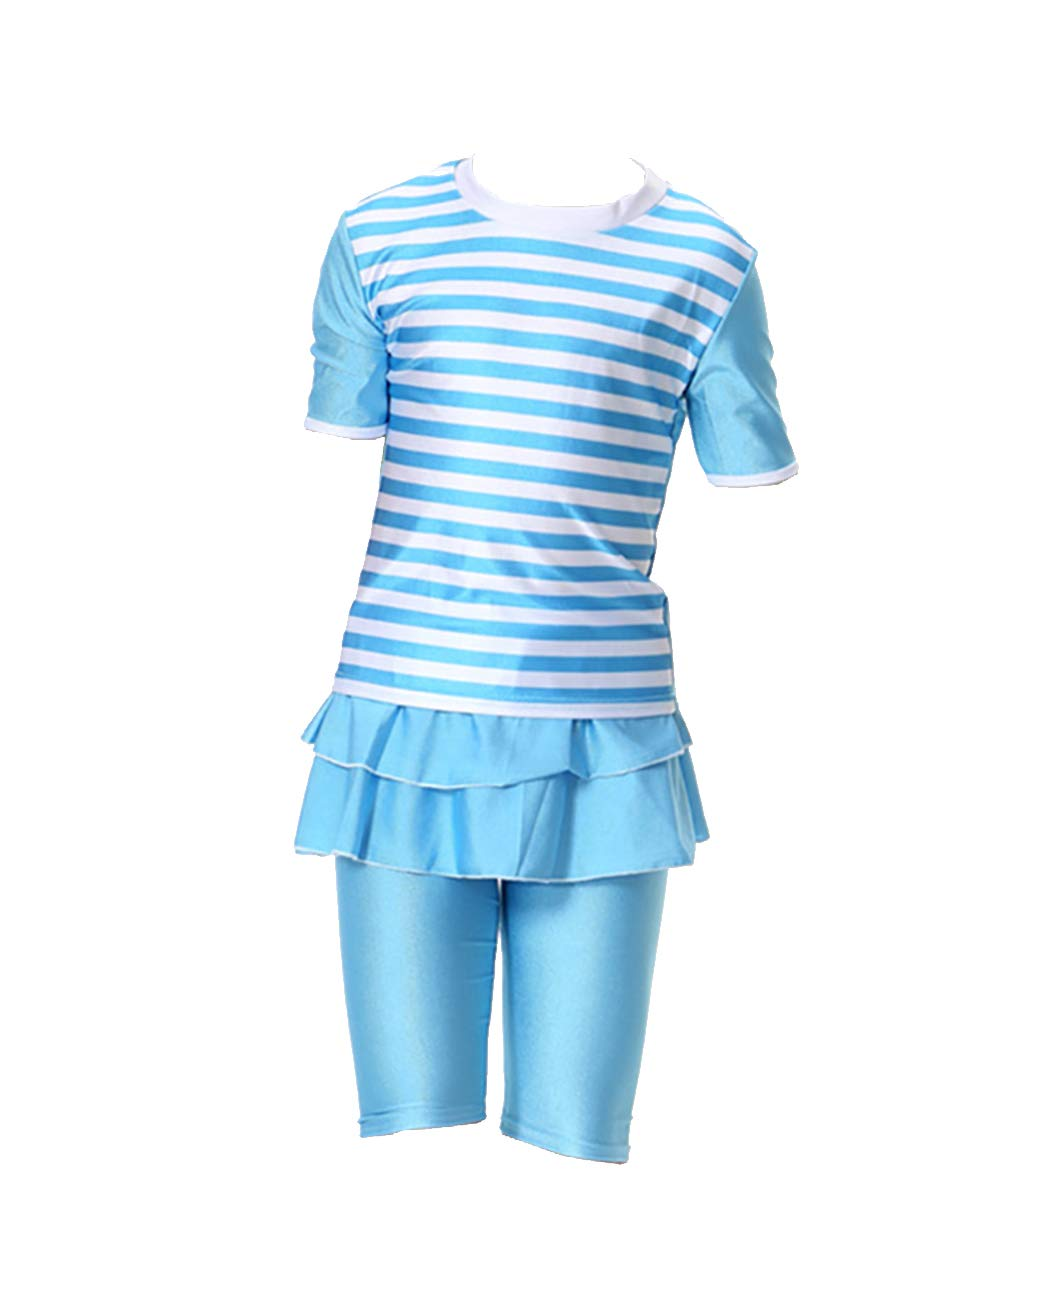 iDrawl Girls Kids Modern Two Piece Short Sleeves Swimsuit Muslim Striped Printed Swimming Costume Bathing Suit for Age 4 to 12